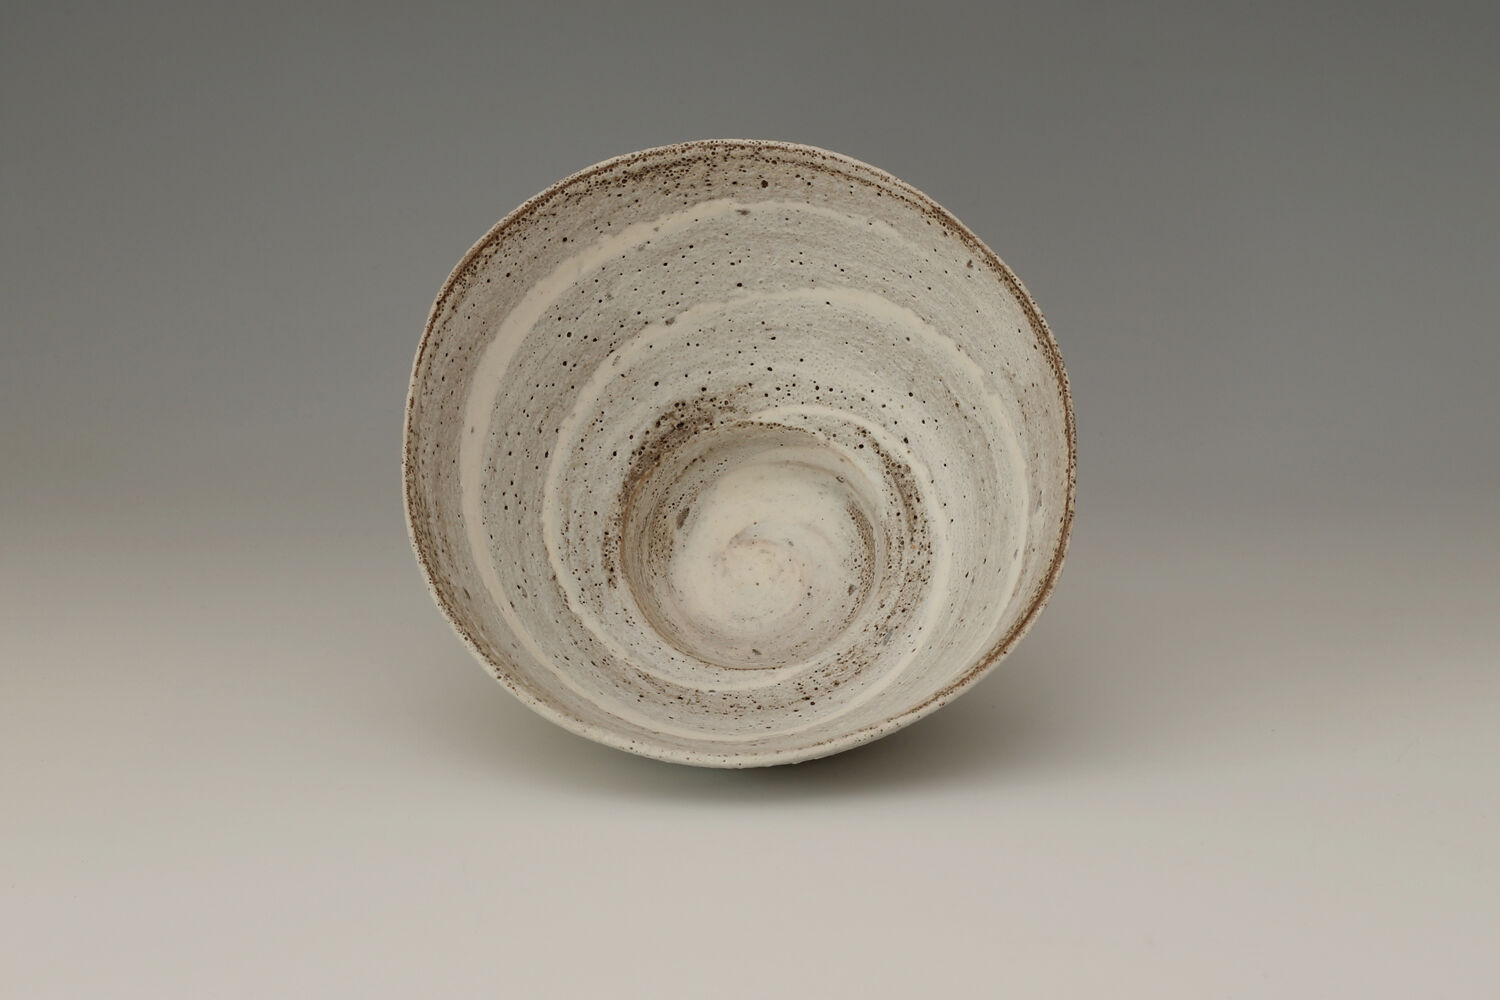 Peter Wills Ceramic Agate-ware Bowl 176